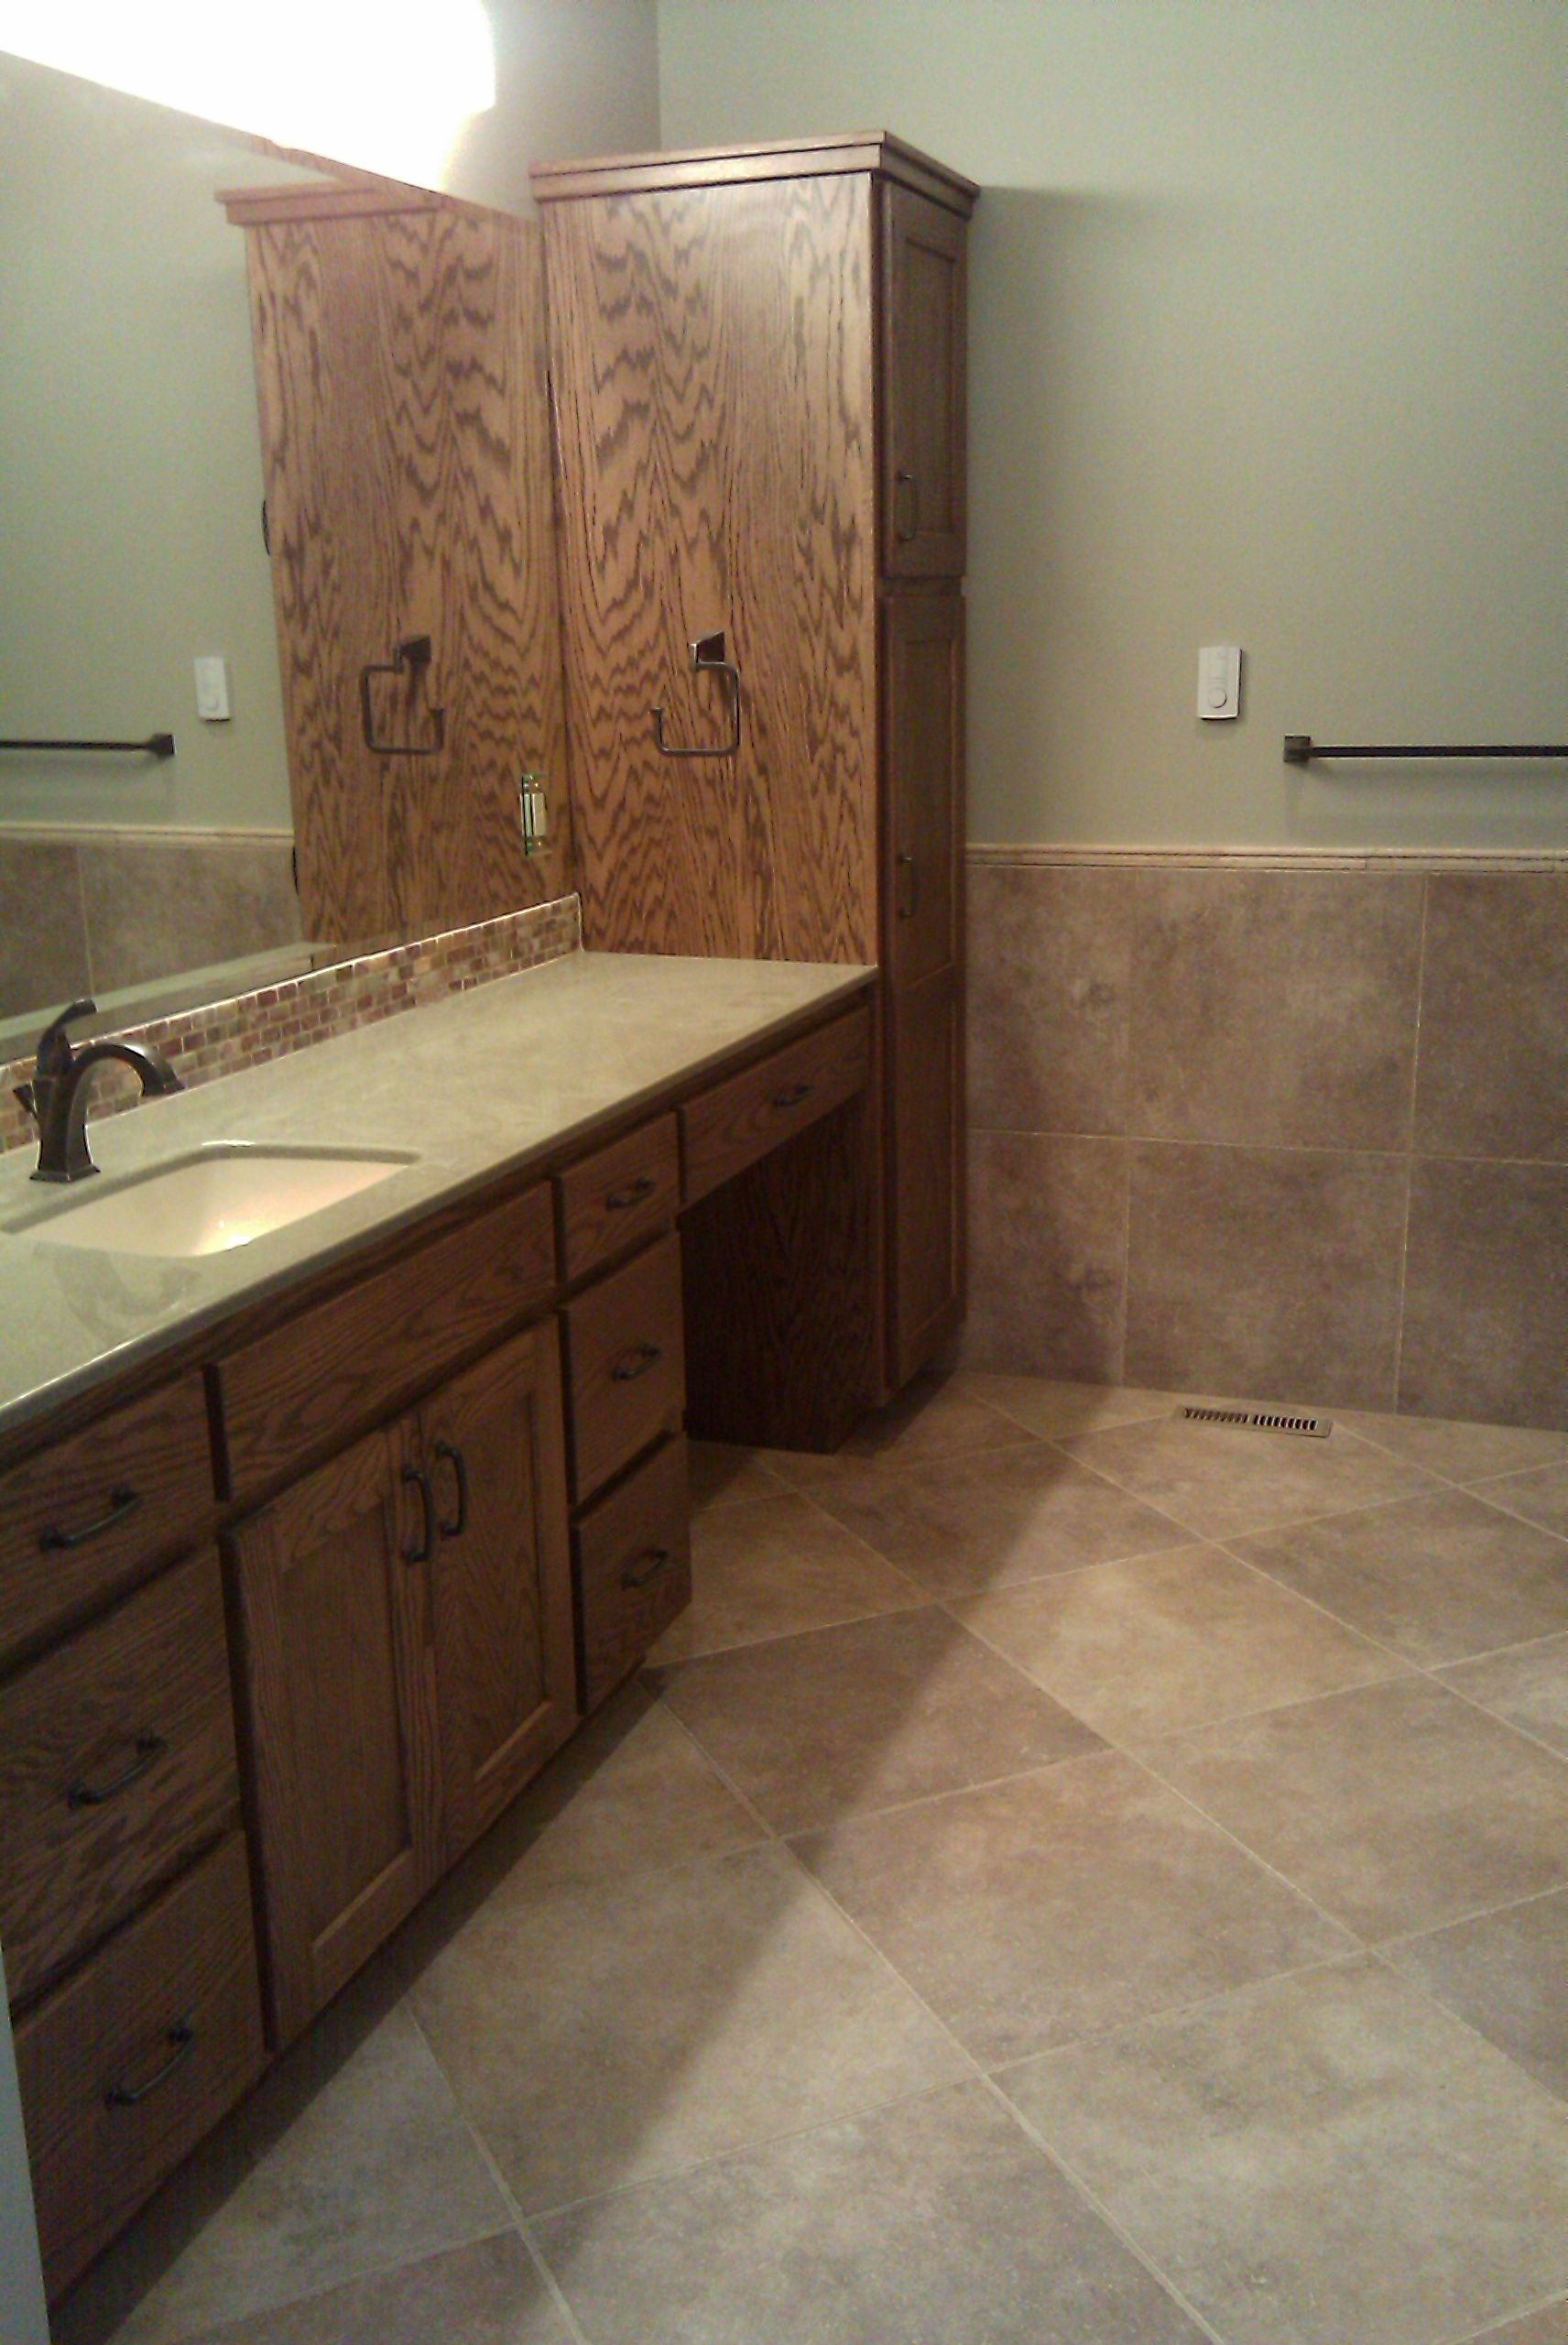 Marazzi walnut canyon cream 20x20 tile installed on 45 degree angle marazzi walnut canyon cream 20x20 tile installed on 45 degree angle by jerrys flooring center dailygadgetfo Choice Image